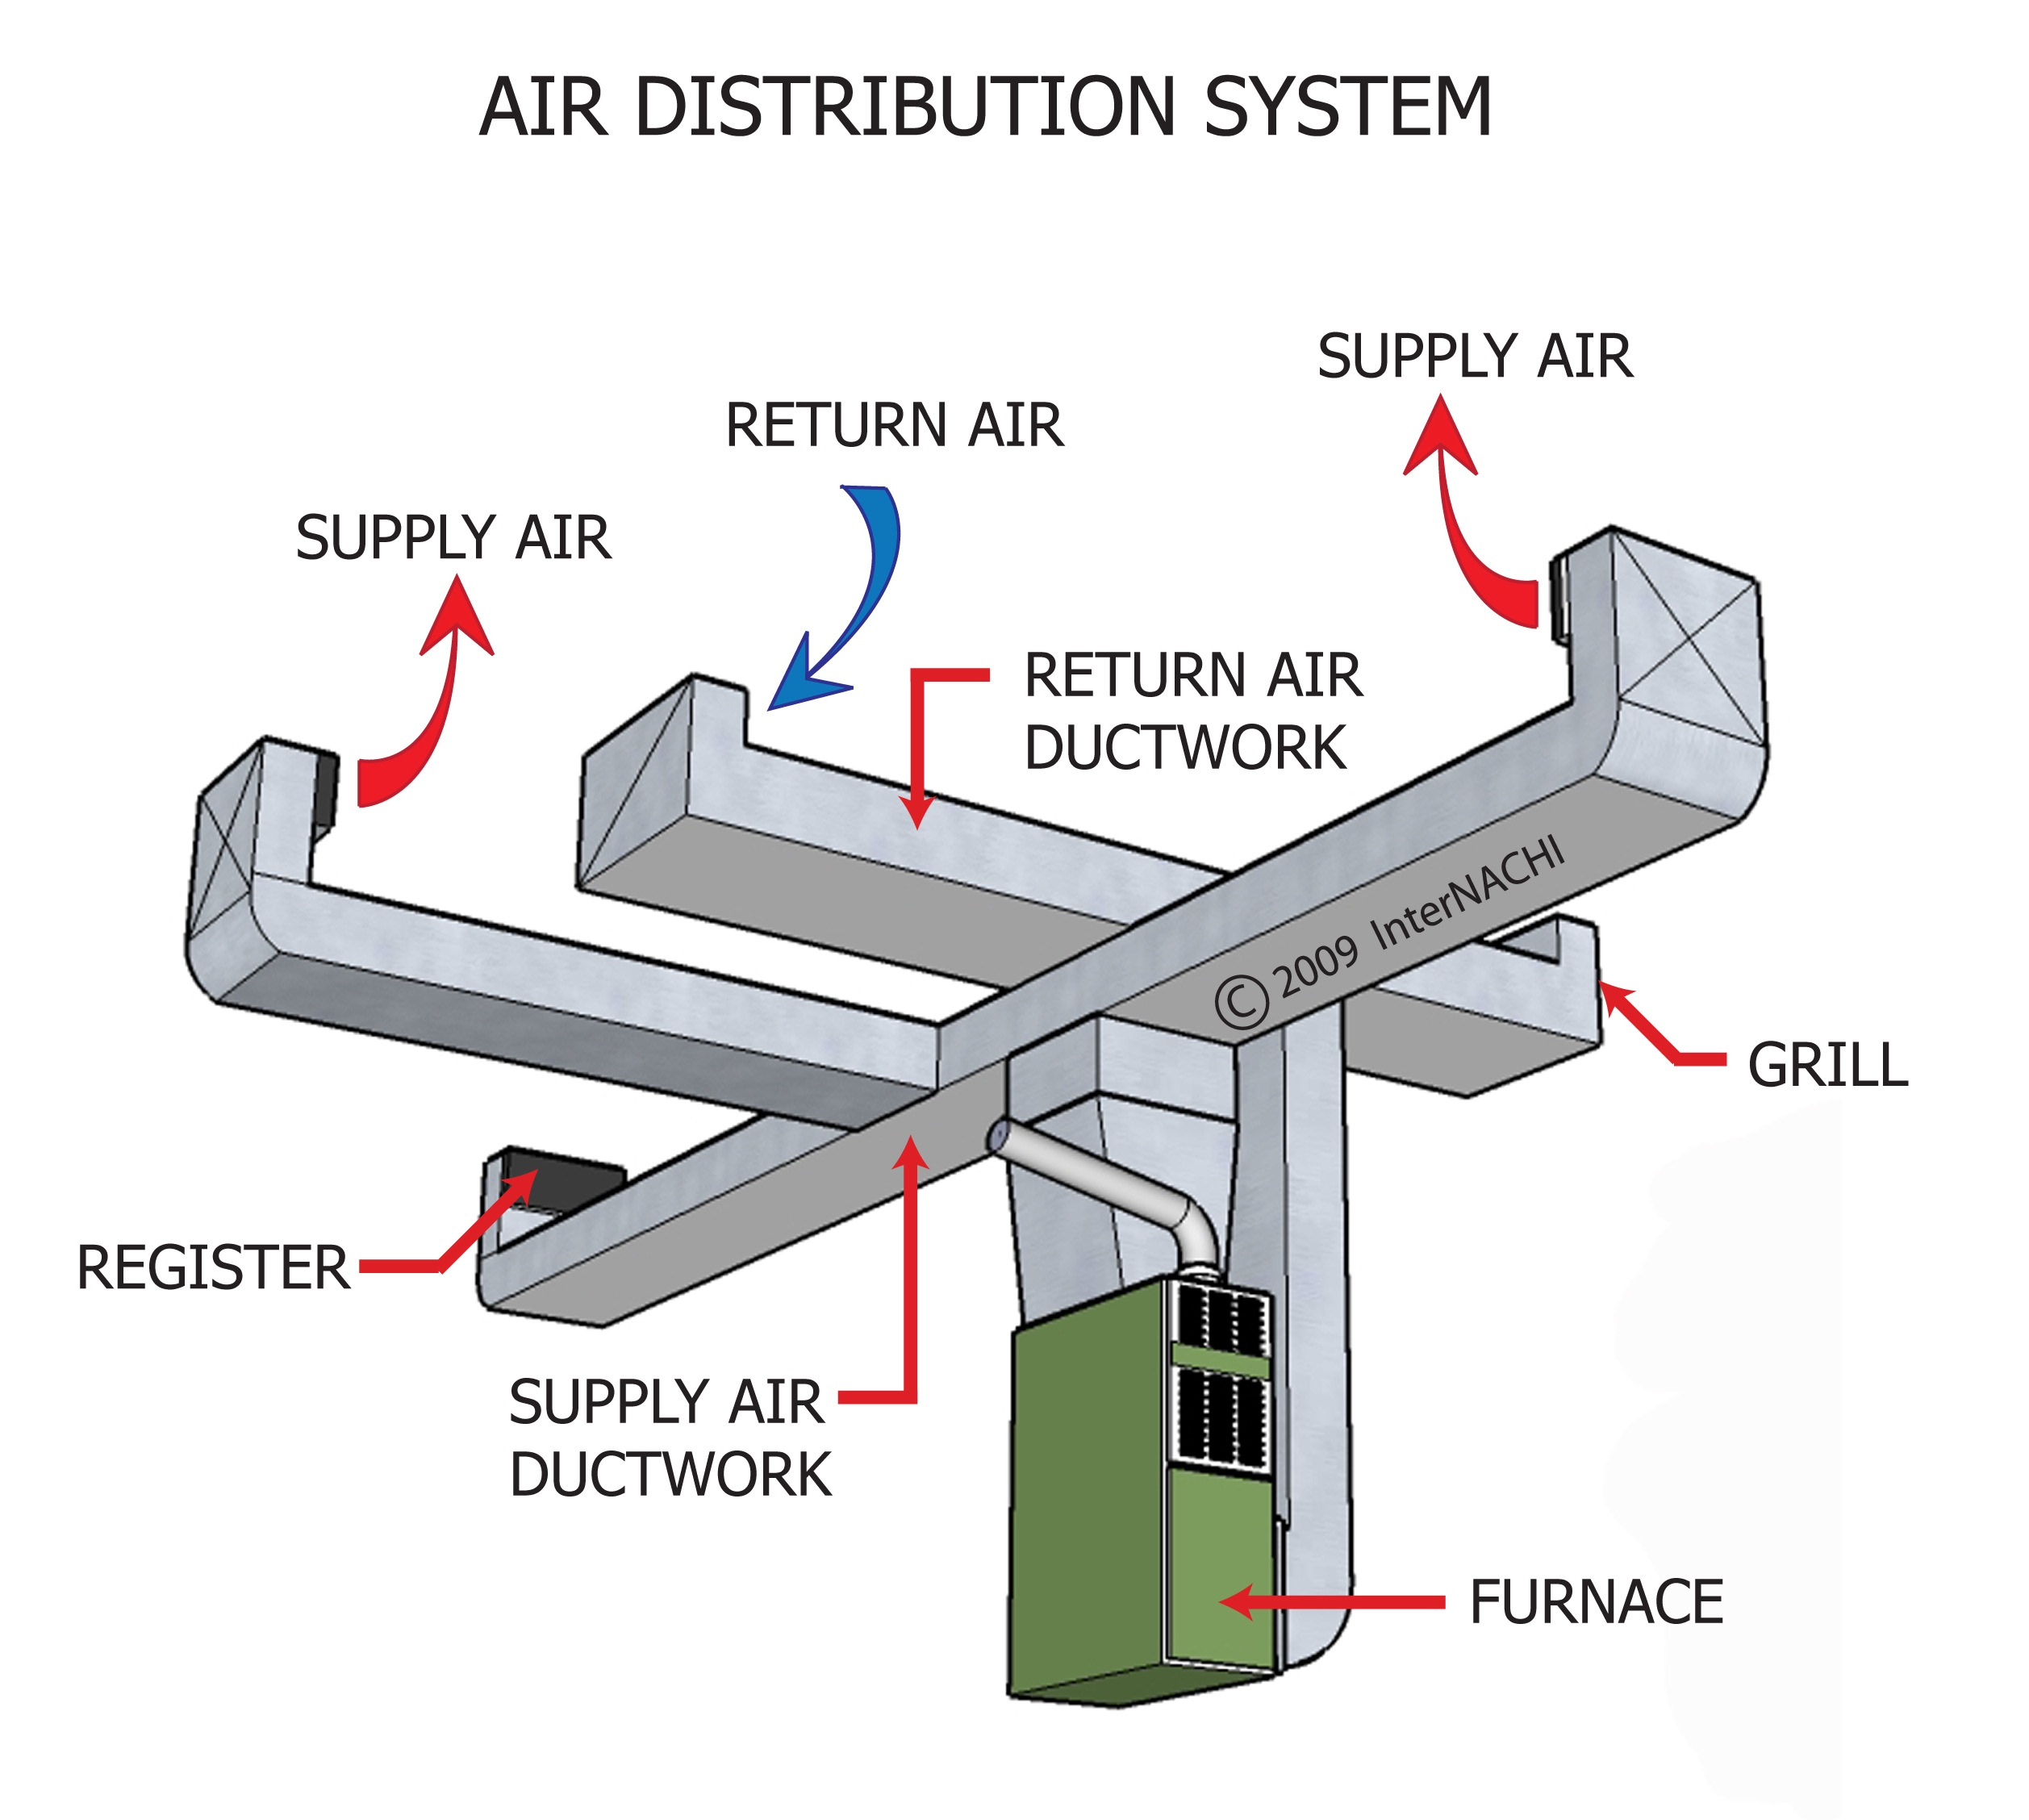 Air distribution system.